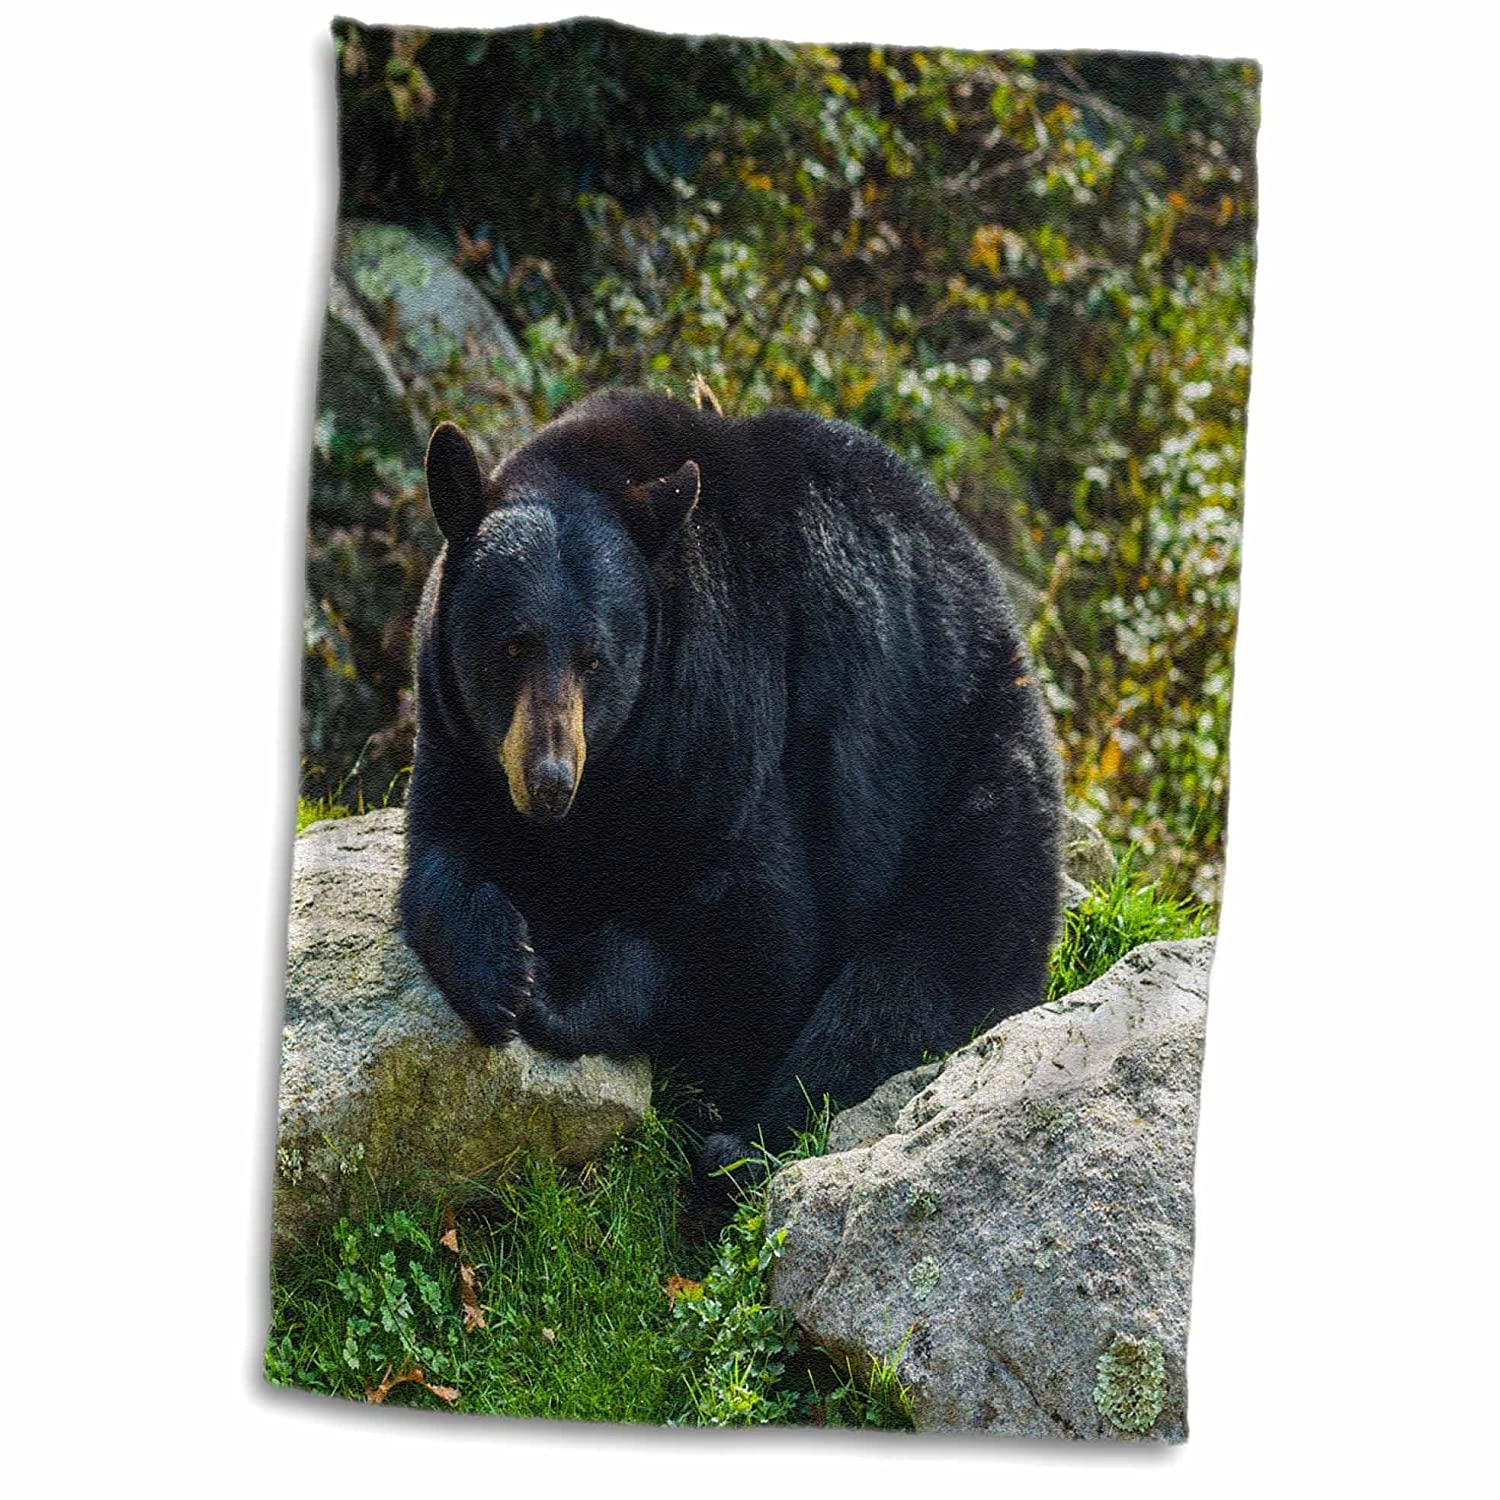 3D Rose North Carolina-Grandfather Mountain State Park-Black Bear Hand Towel 15 x 22